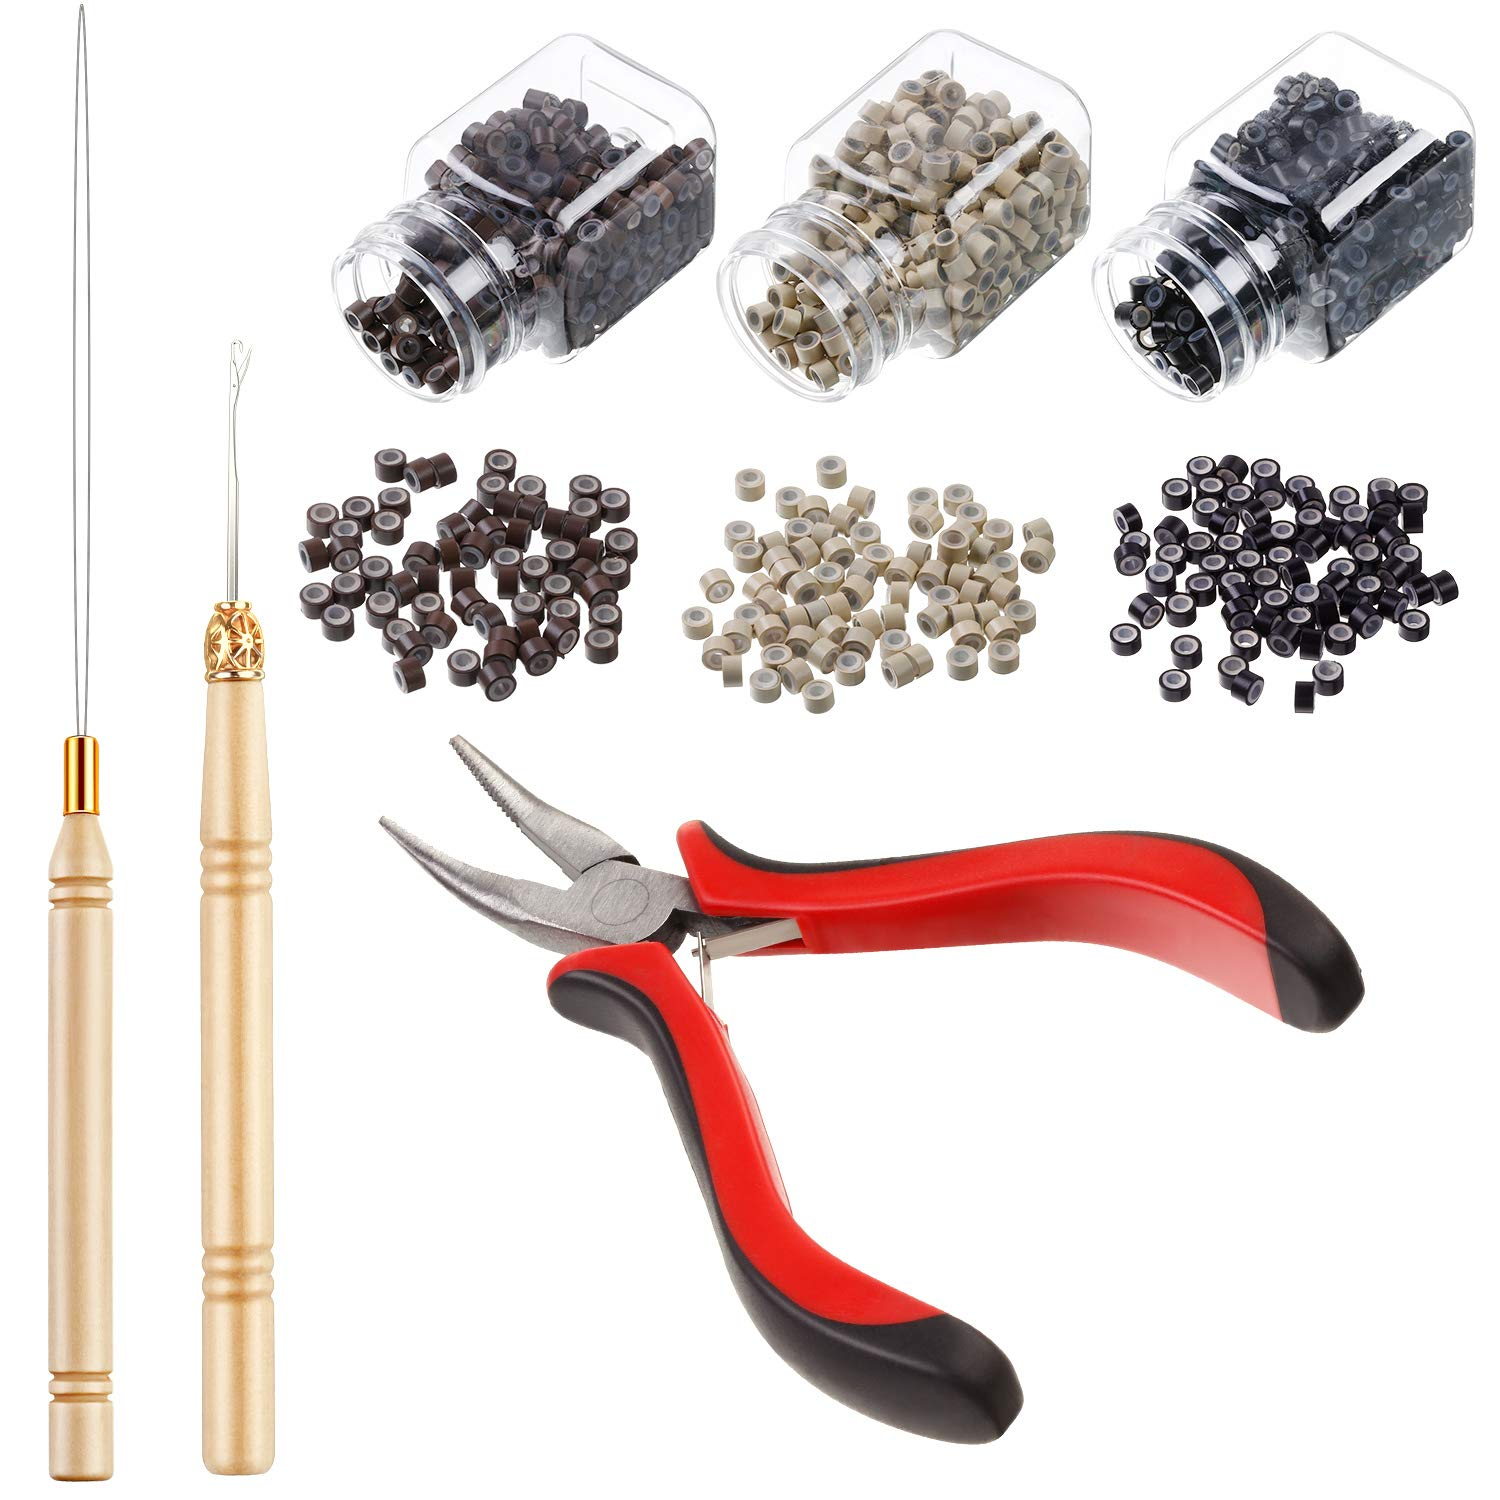 Hair Extension Kit Pliers Pulling Hook Bead Device Tool Kits and 1500 Pieces Silicone Lined Micro Rings (Black, Blonde and Brown Beads) by Maitys